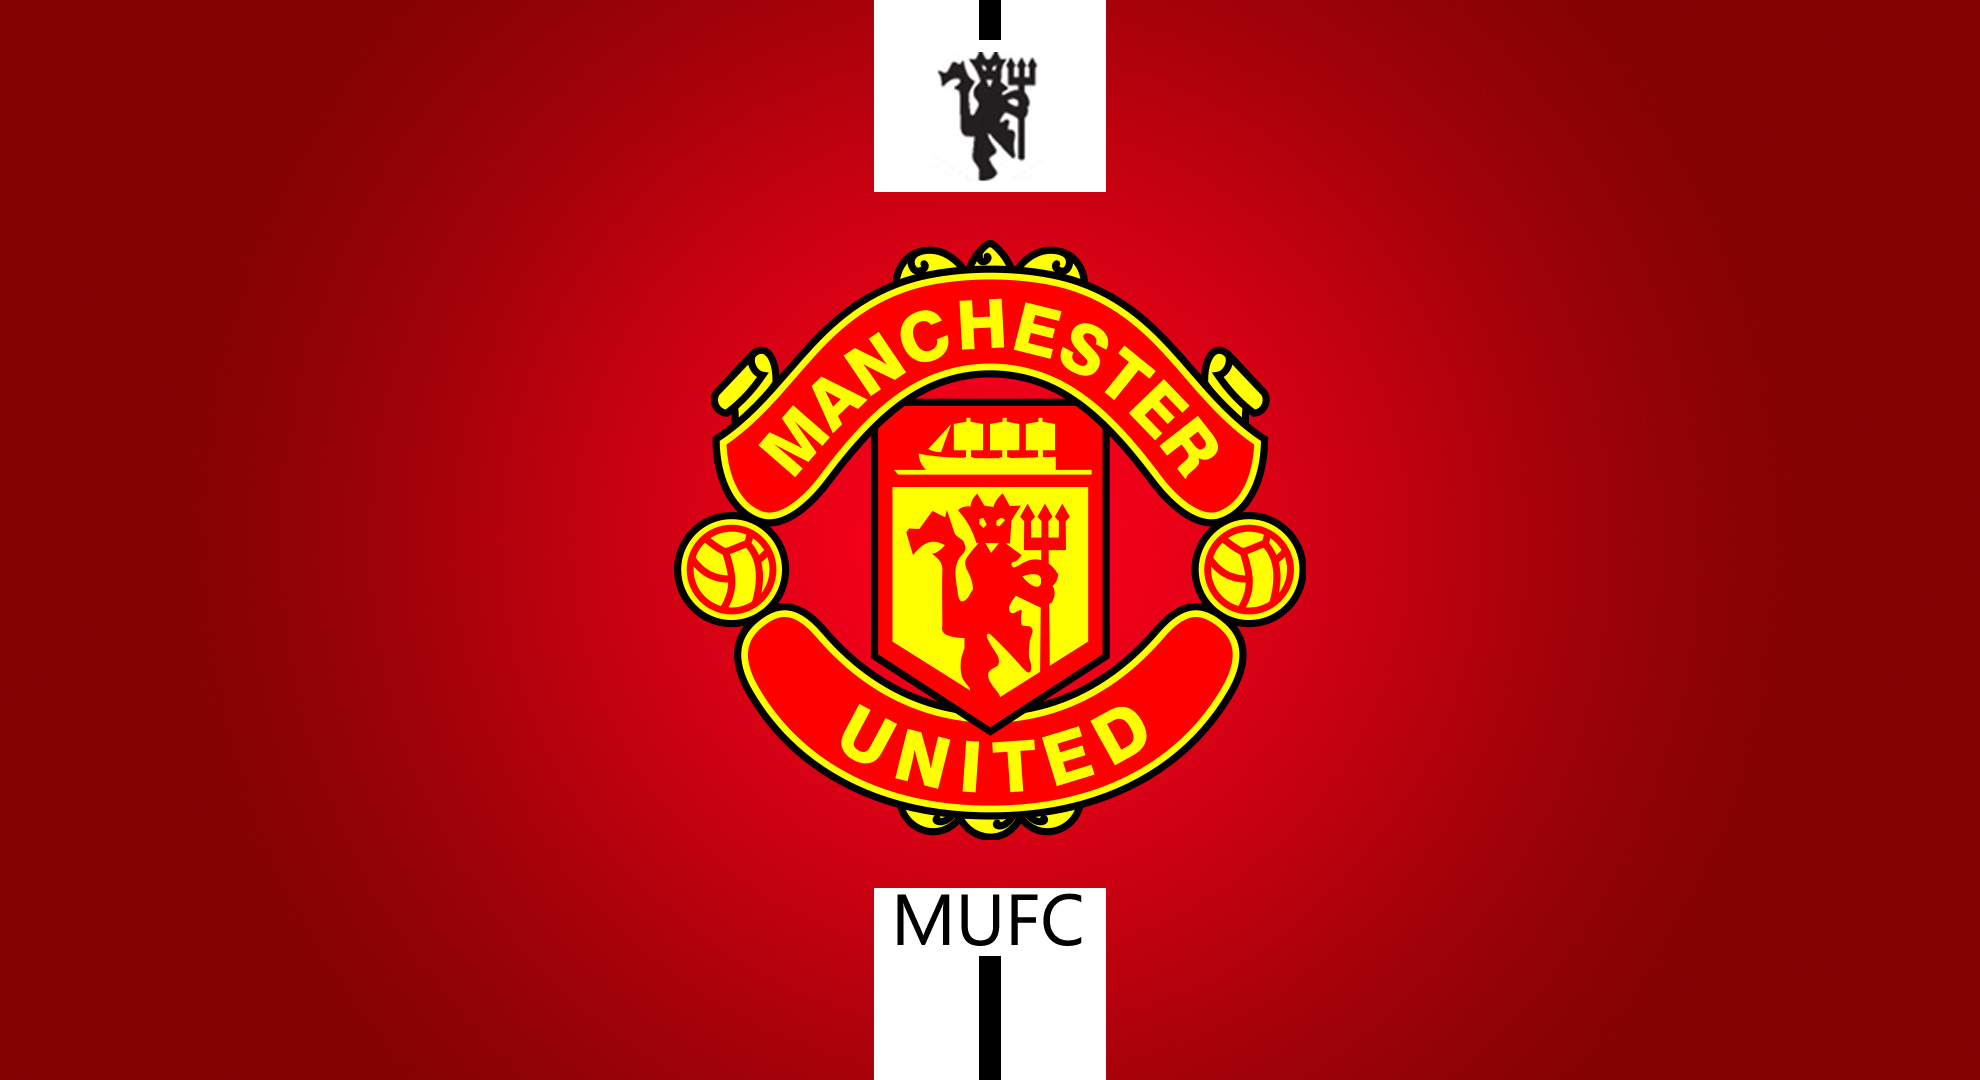 Free Download Manchester United Logo Large Images 1980x1080